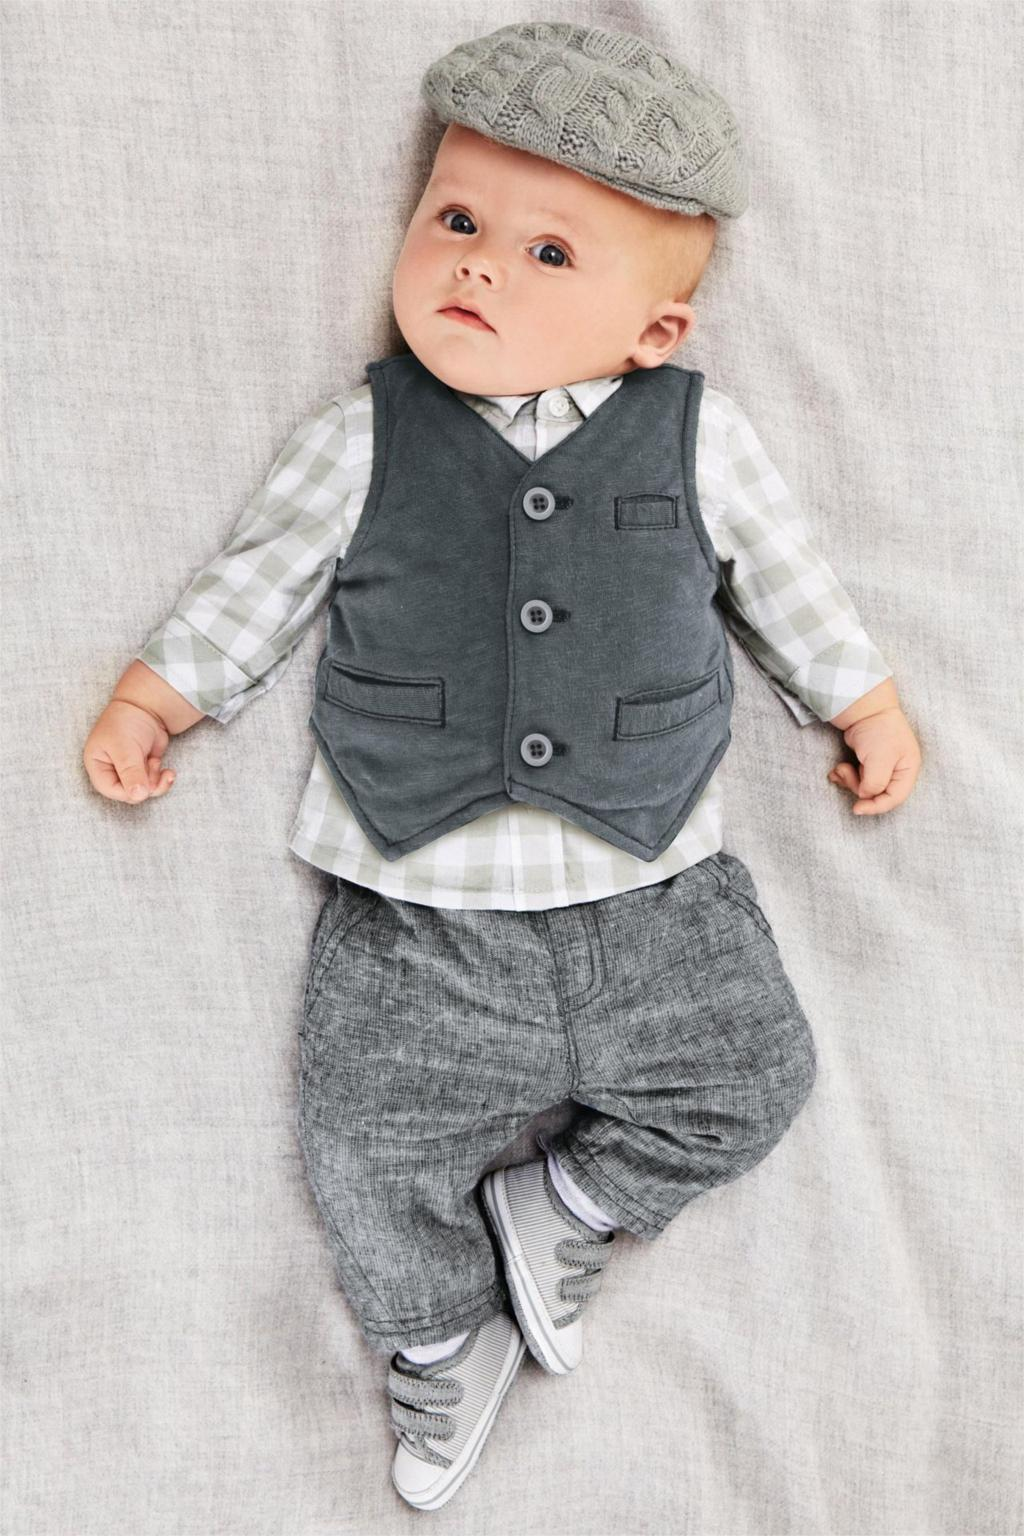 2cfd4784fbd5 2015 Cute baby boy clothes 3pcs newborn boy outfits infant clothing set  spring autumn shirt with matching pants jeans Polo sets-in Clothing Sets  from Mother ...